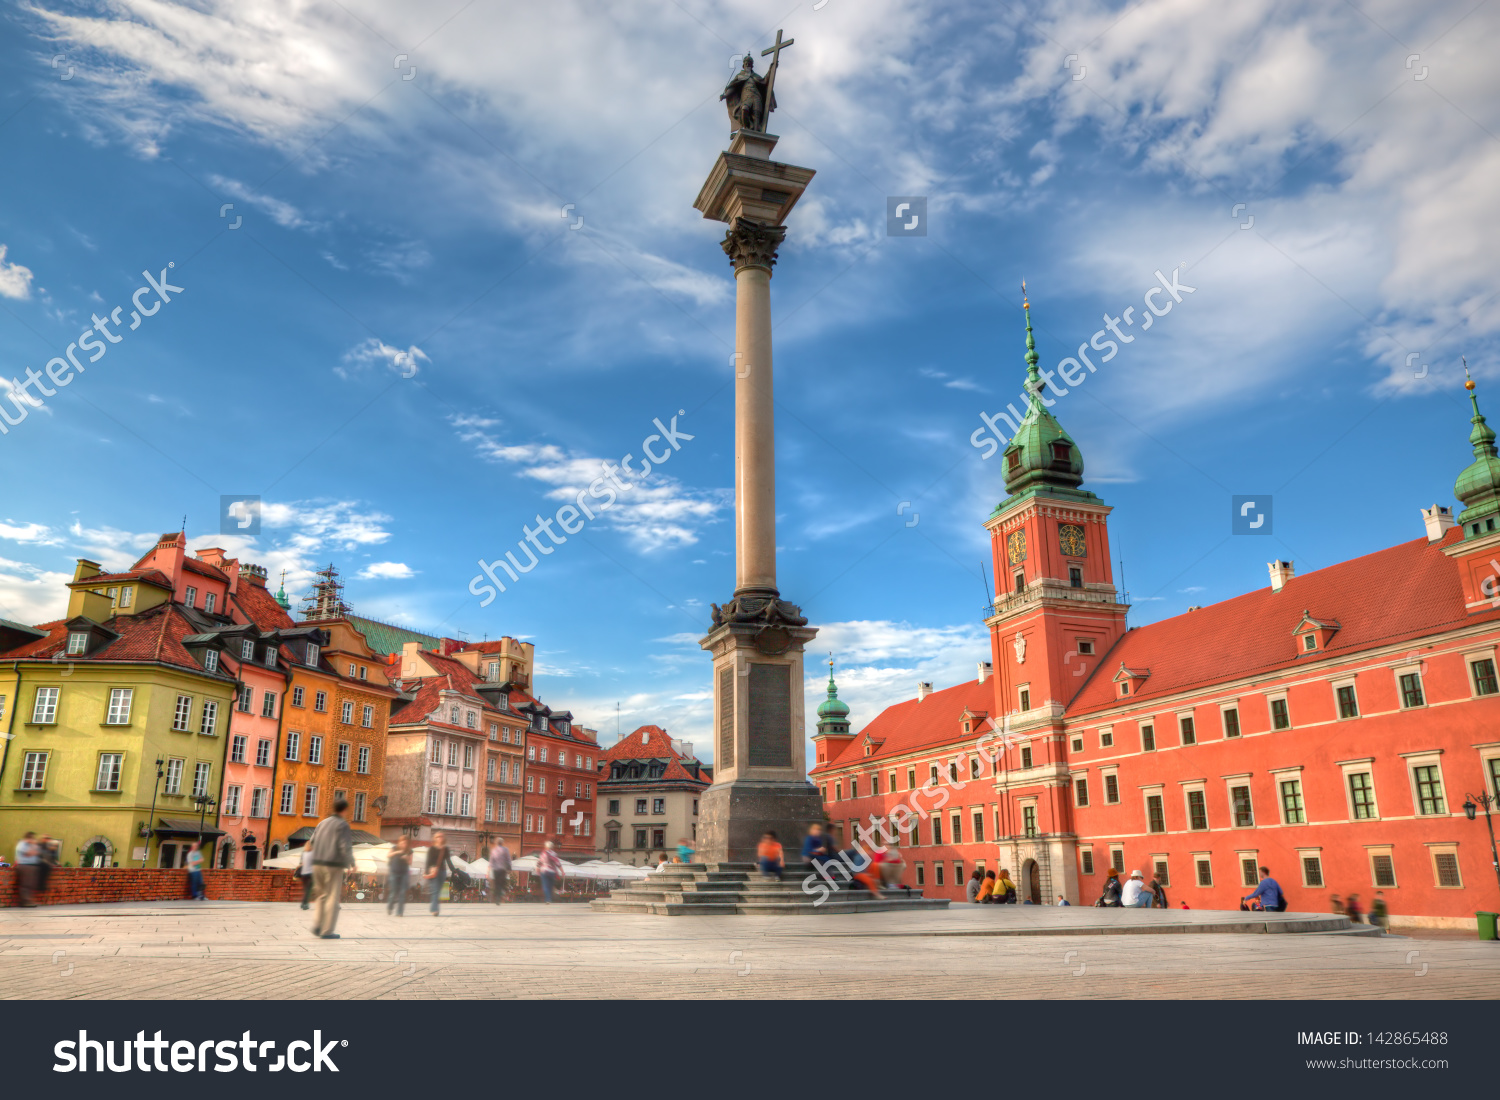 Old Town Warsaw Poland Royal Castle Stock Photo 142865488.